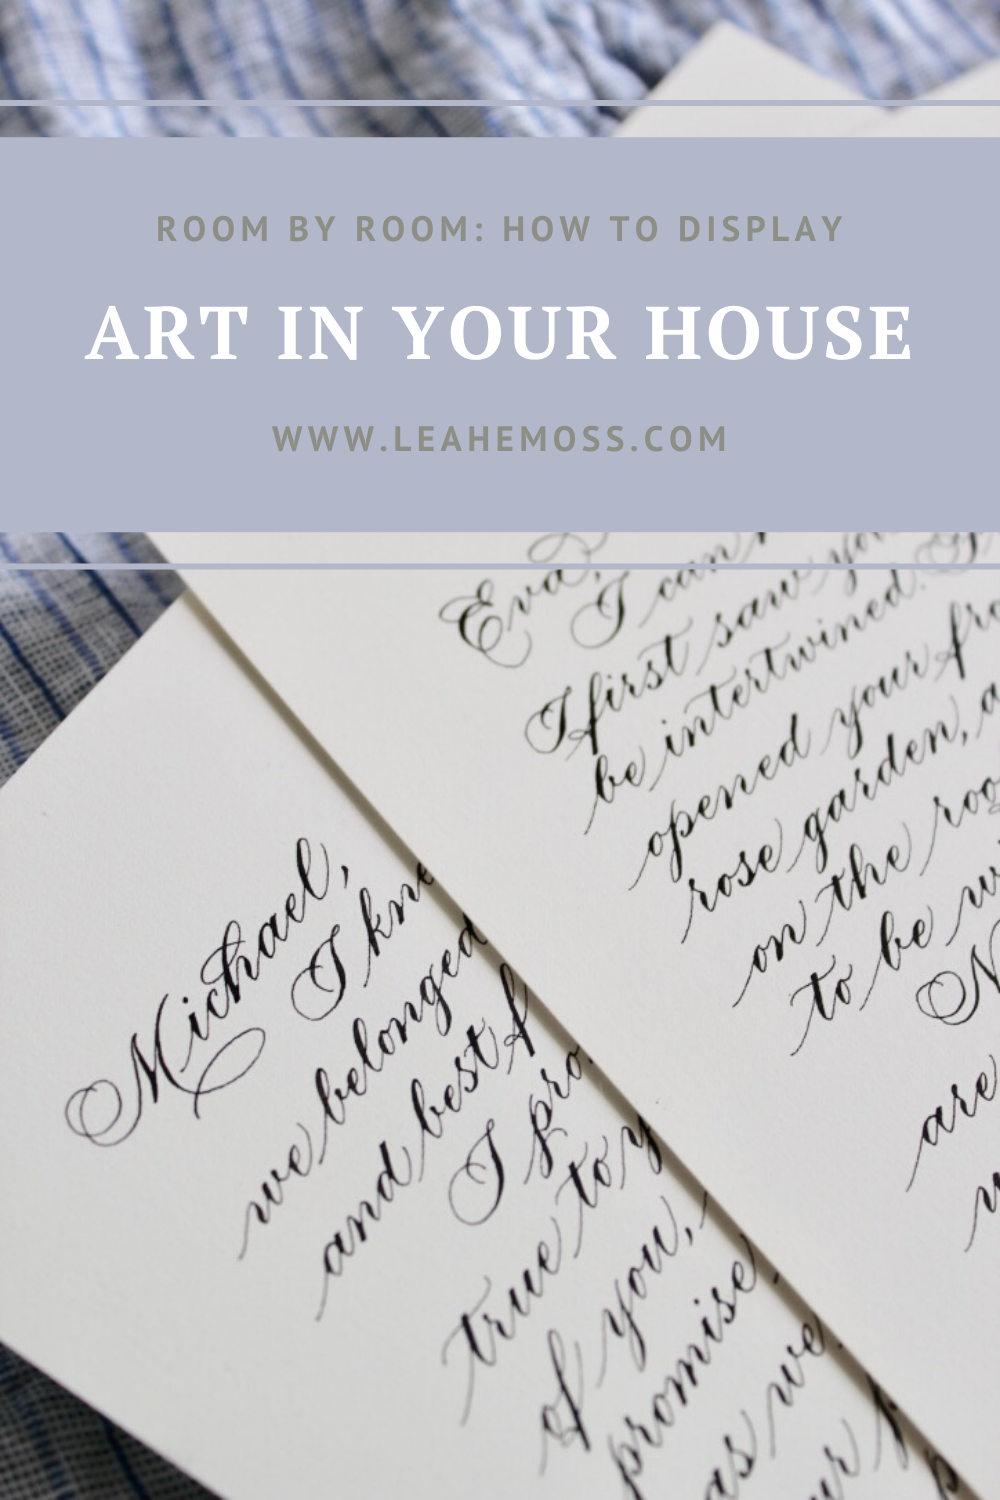 Get my room-by-room tips on how to display art in your house - Leah E. Moss Designs #meaningfulart #familyheirlooms #watercolorart #homedecor #interiordesigninspo